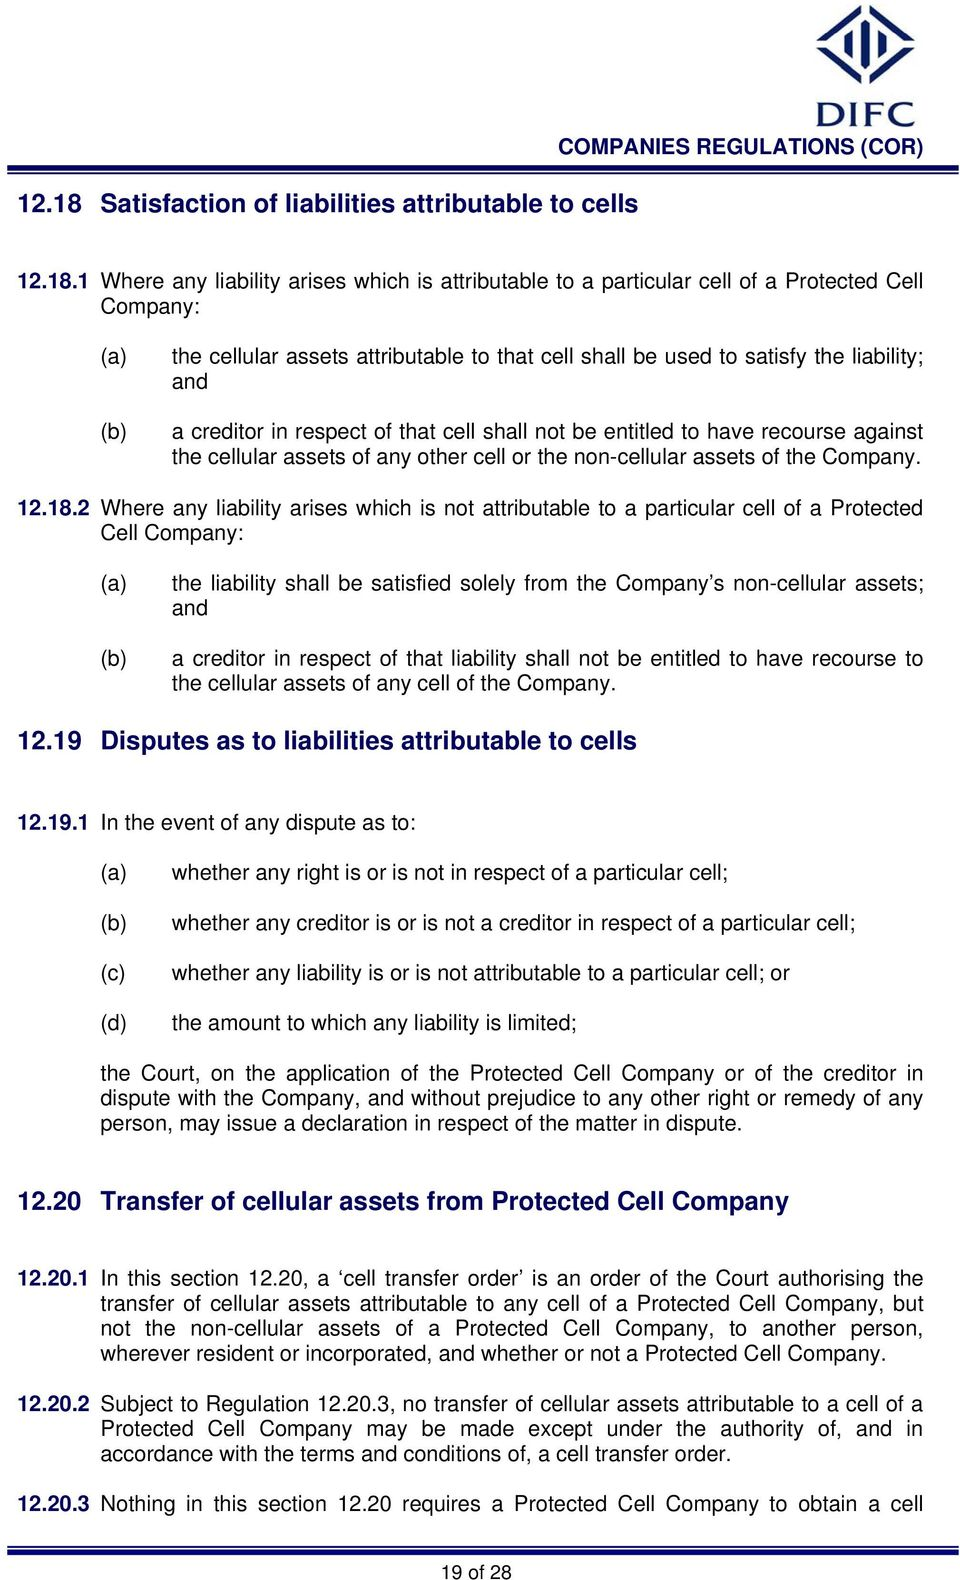 1 Where any liability arises which is attributable to a particular cell of a Protected Cell Company: the cellular assets attributable to that cell shall be used to satisfy the liability; and a